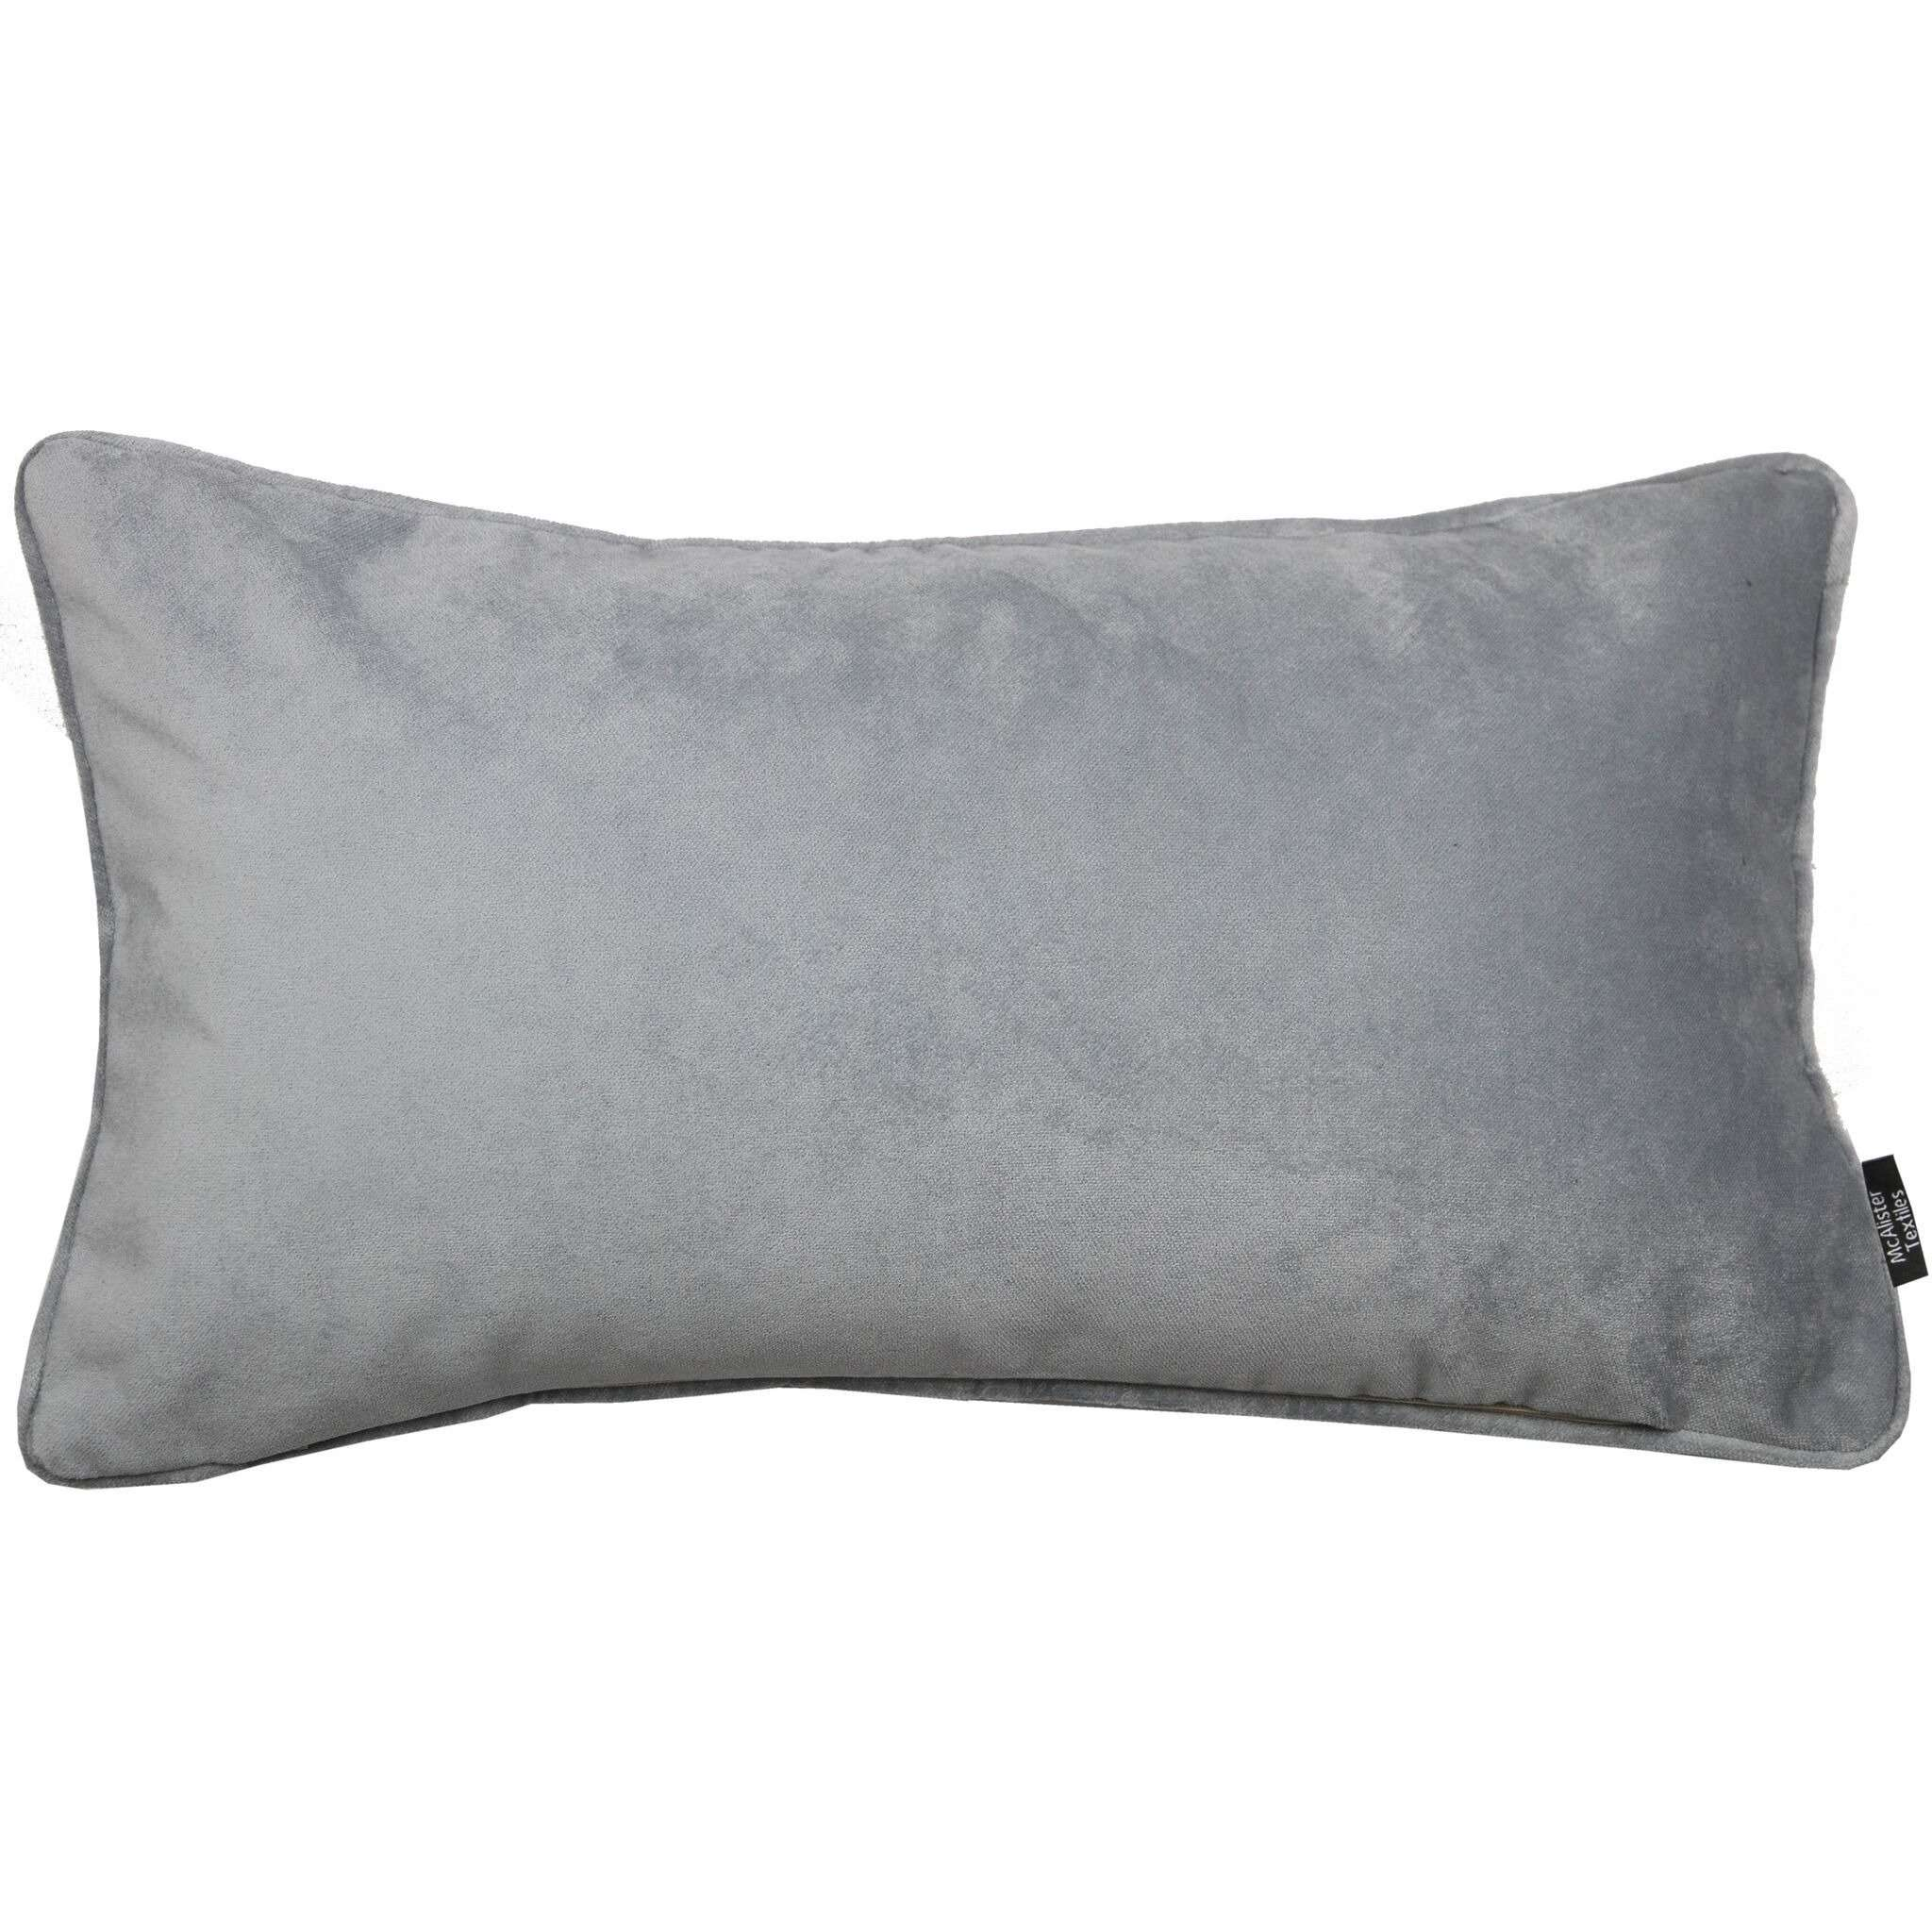 McAlister Textiles Matt Dove Grey Velvet Pillow Pillow Cover Only 50cm x 30cm